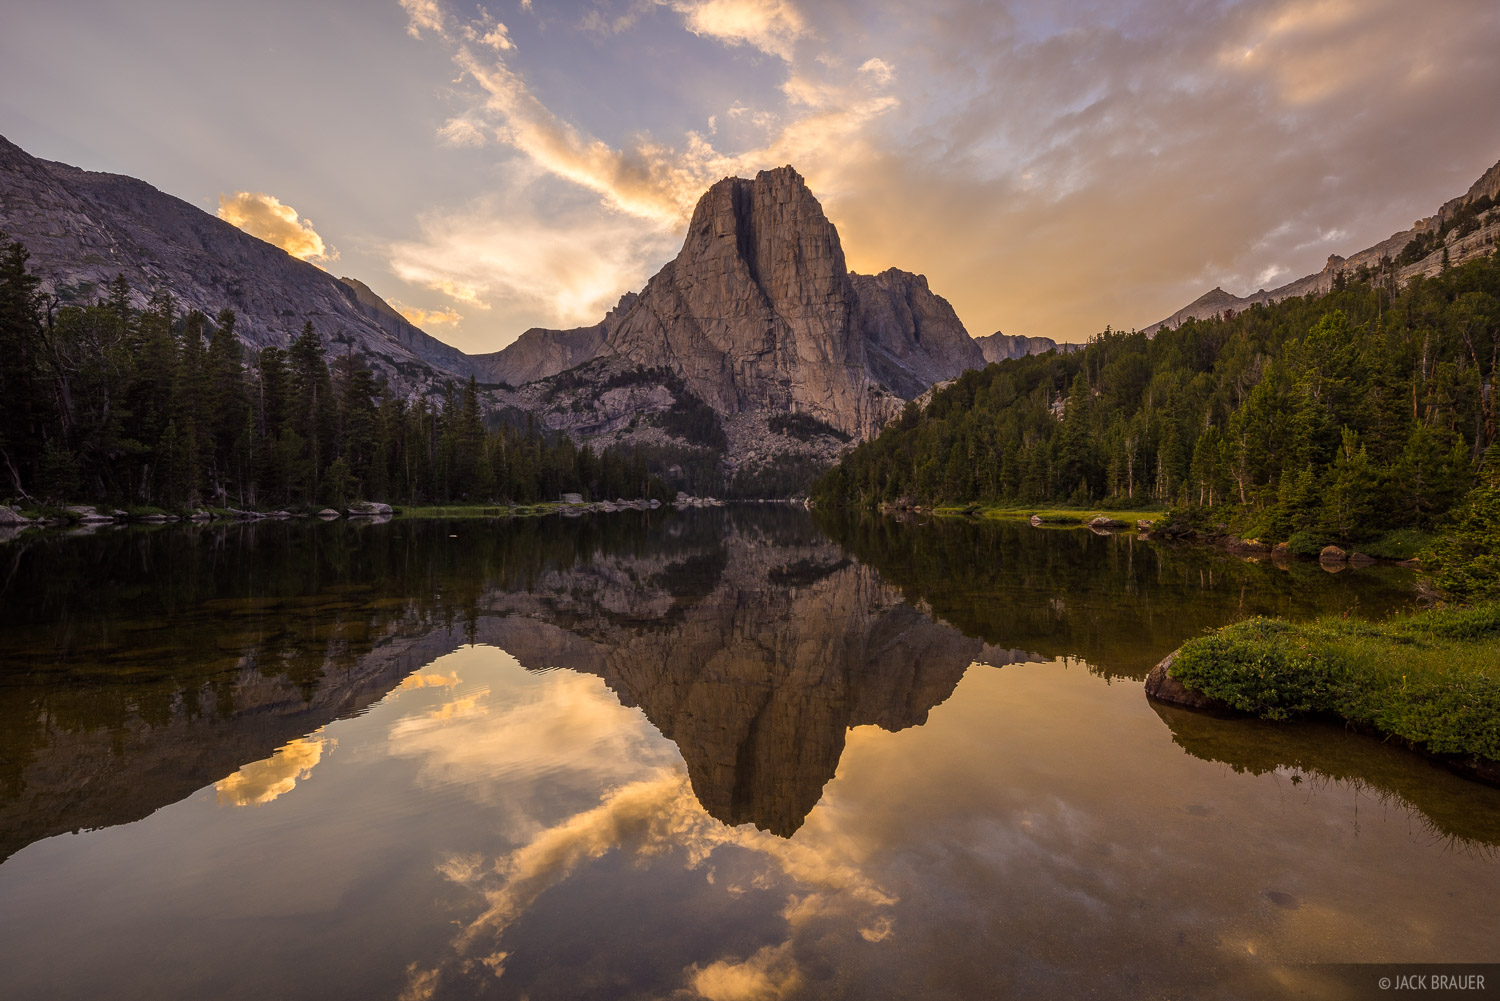 Cathedral Peak (or technically an arm of Cathedral Peak) reflects in Cathedral Lake at sunset.